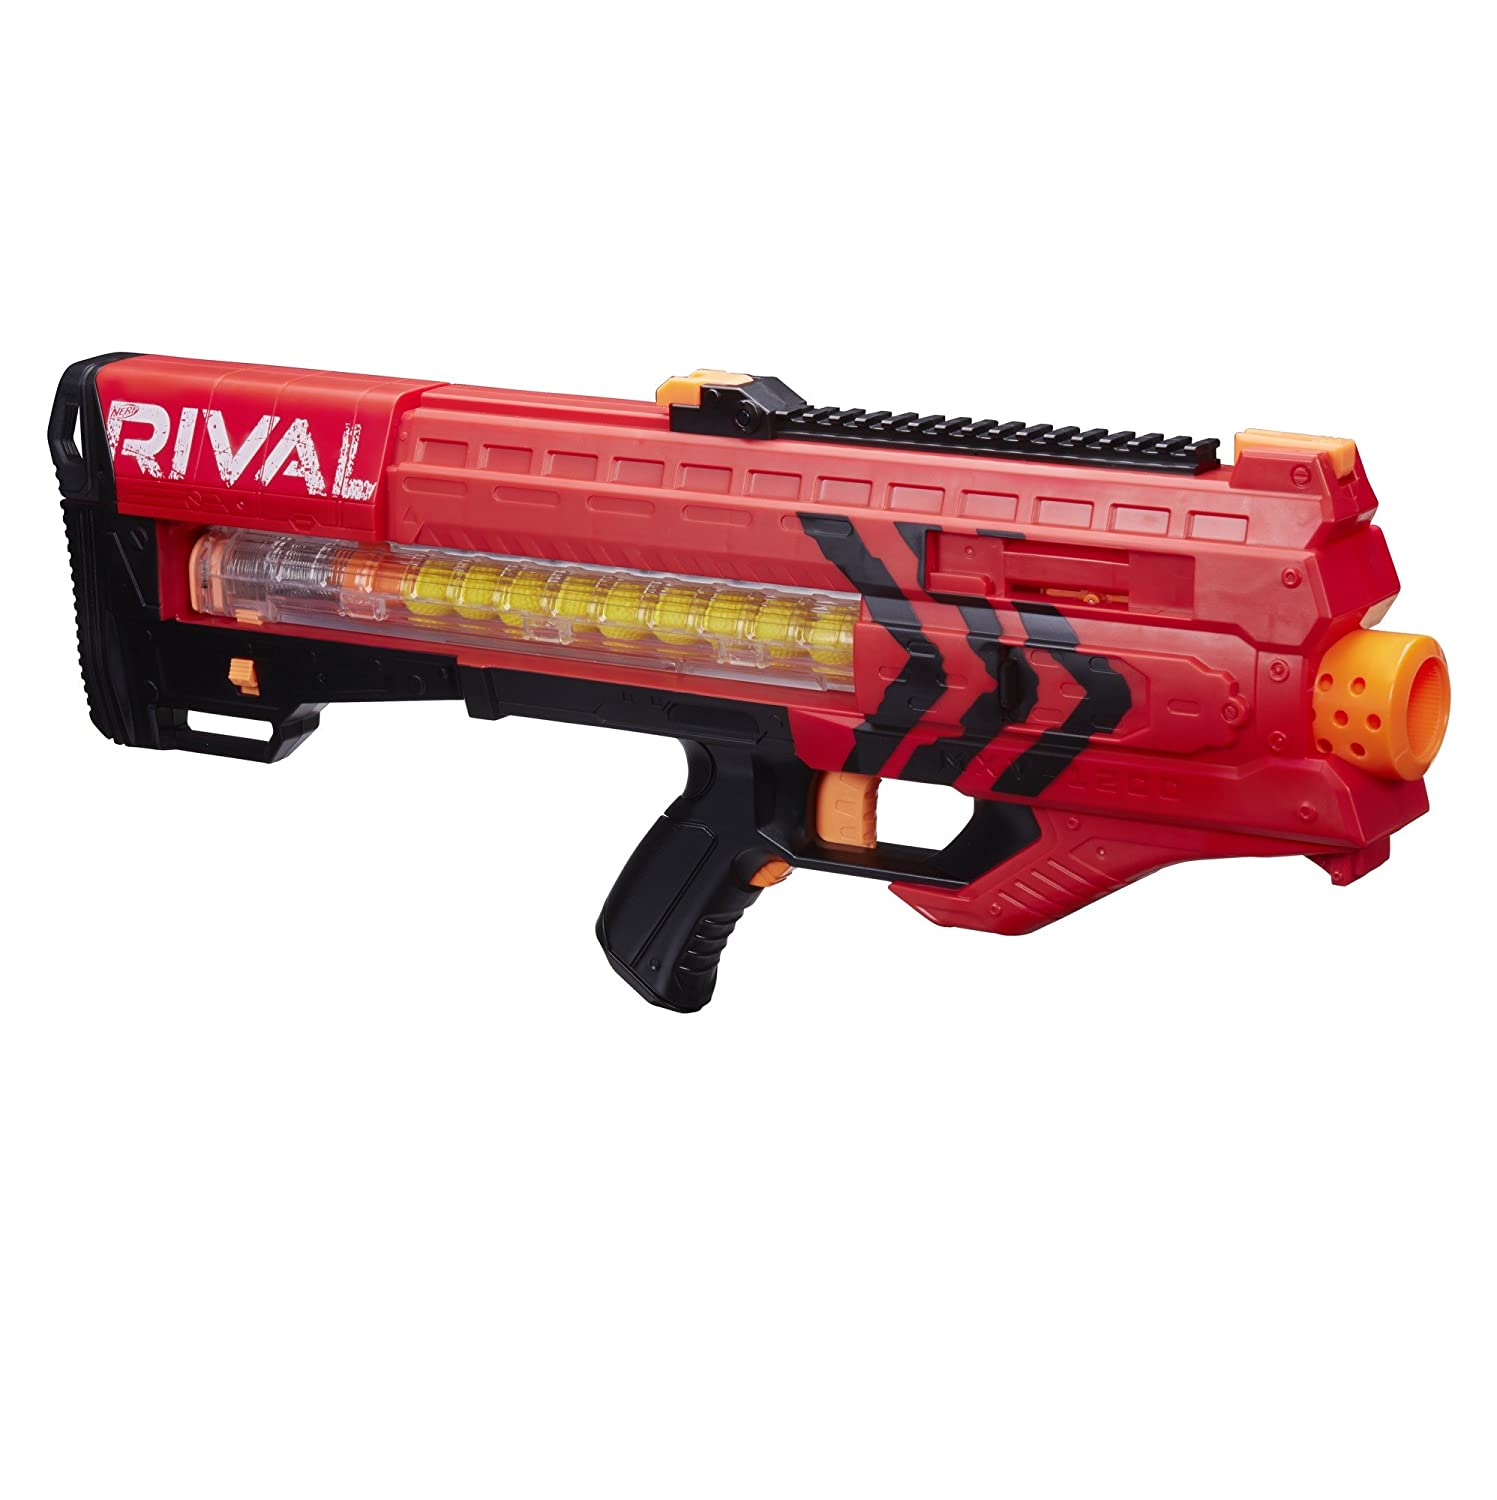 Buy Nerf MXV 1200 Rival Zeus Blaster line at Low Prices in India Amazon